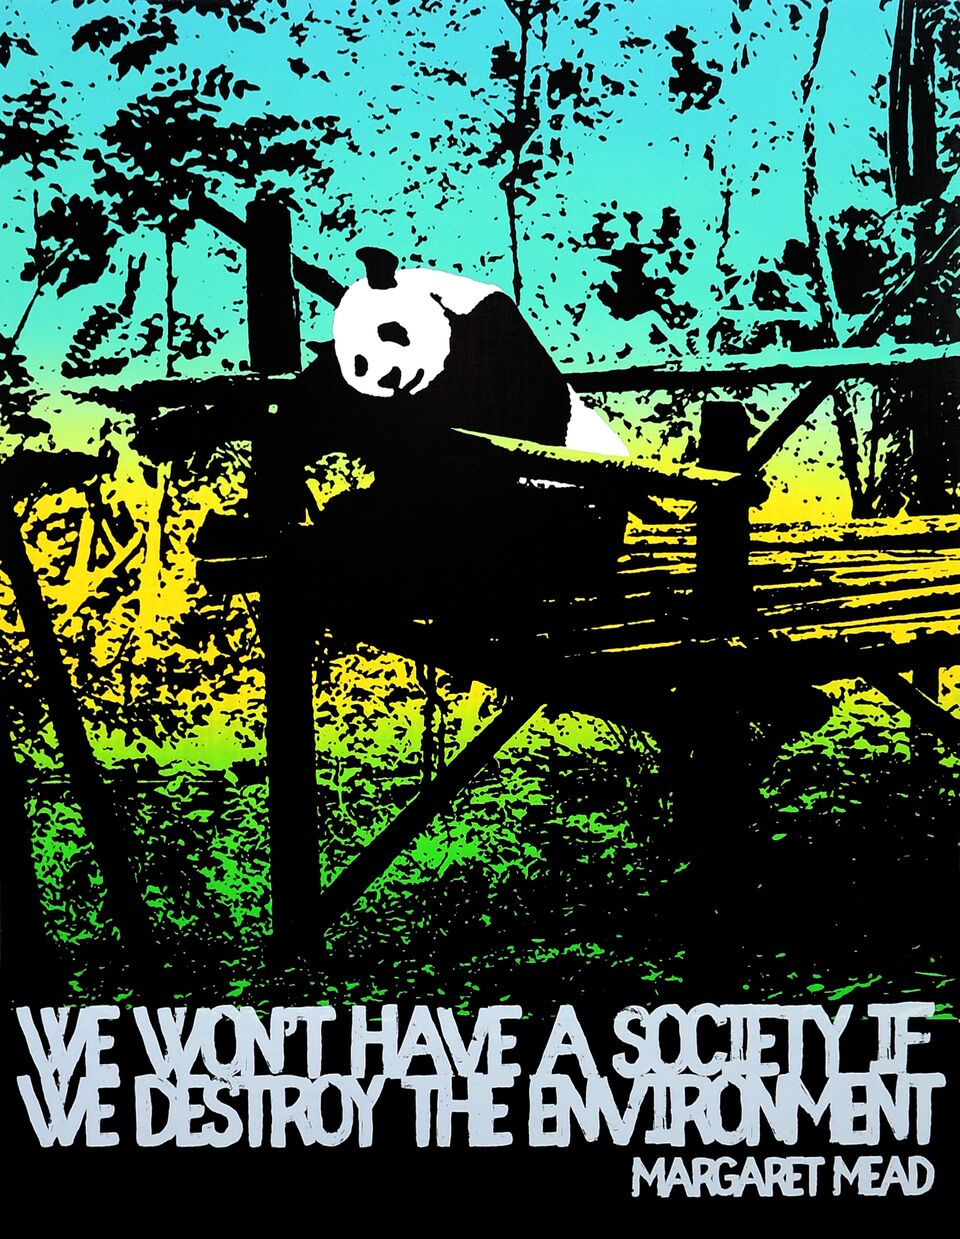 Motivational Panda (Margaret Mead)